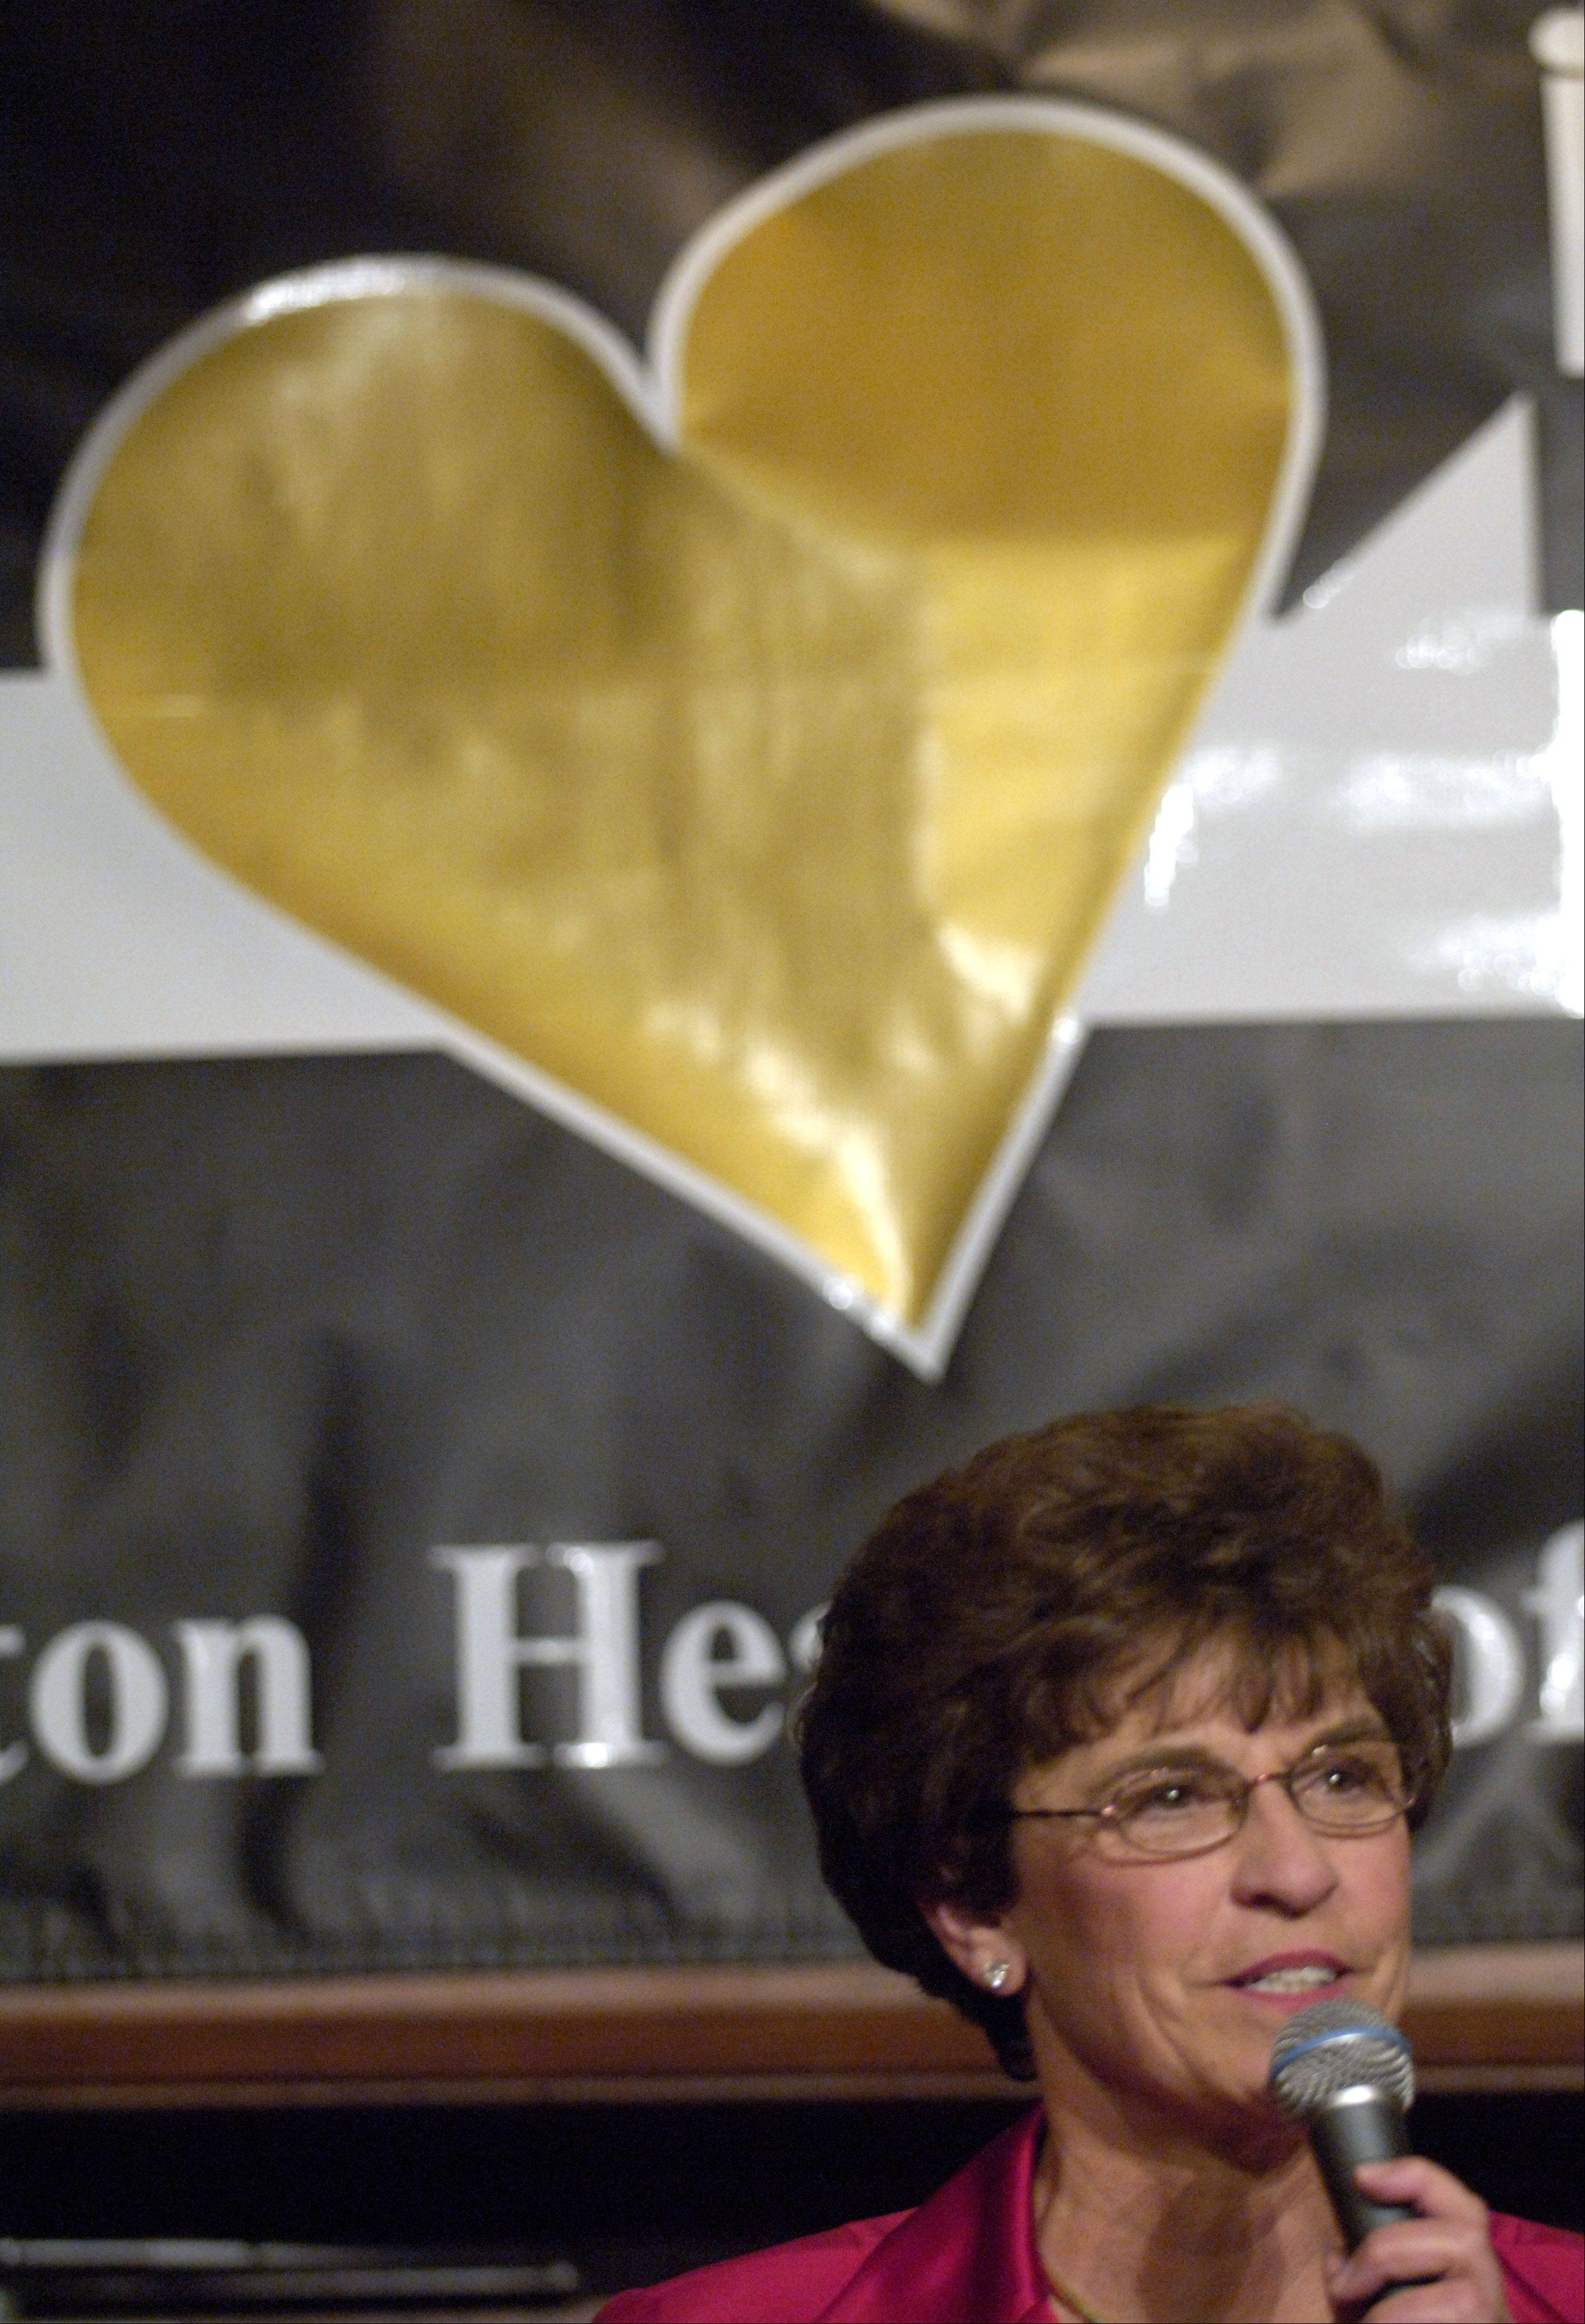 Village President Arlene Mulder welcomes guests and honorees to the annual Hearts of Gold dinner, held Feb. 18, 2006 at the Sheraton Chicago Northwest Hotel.